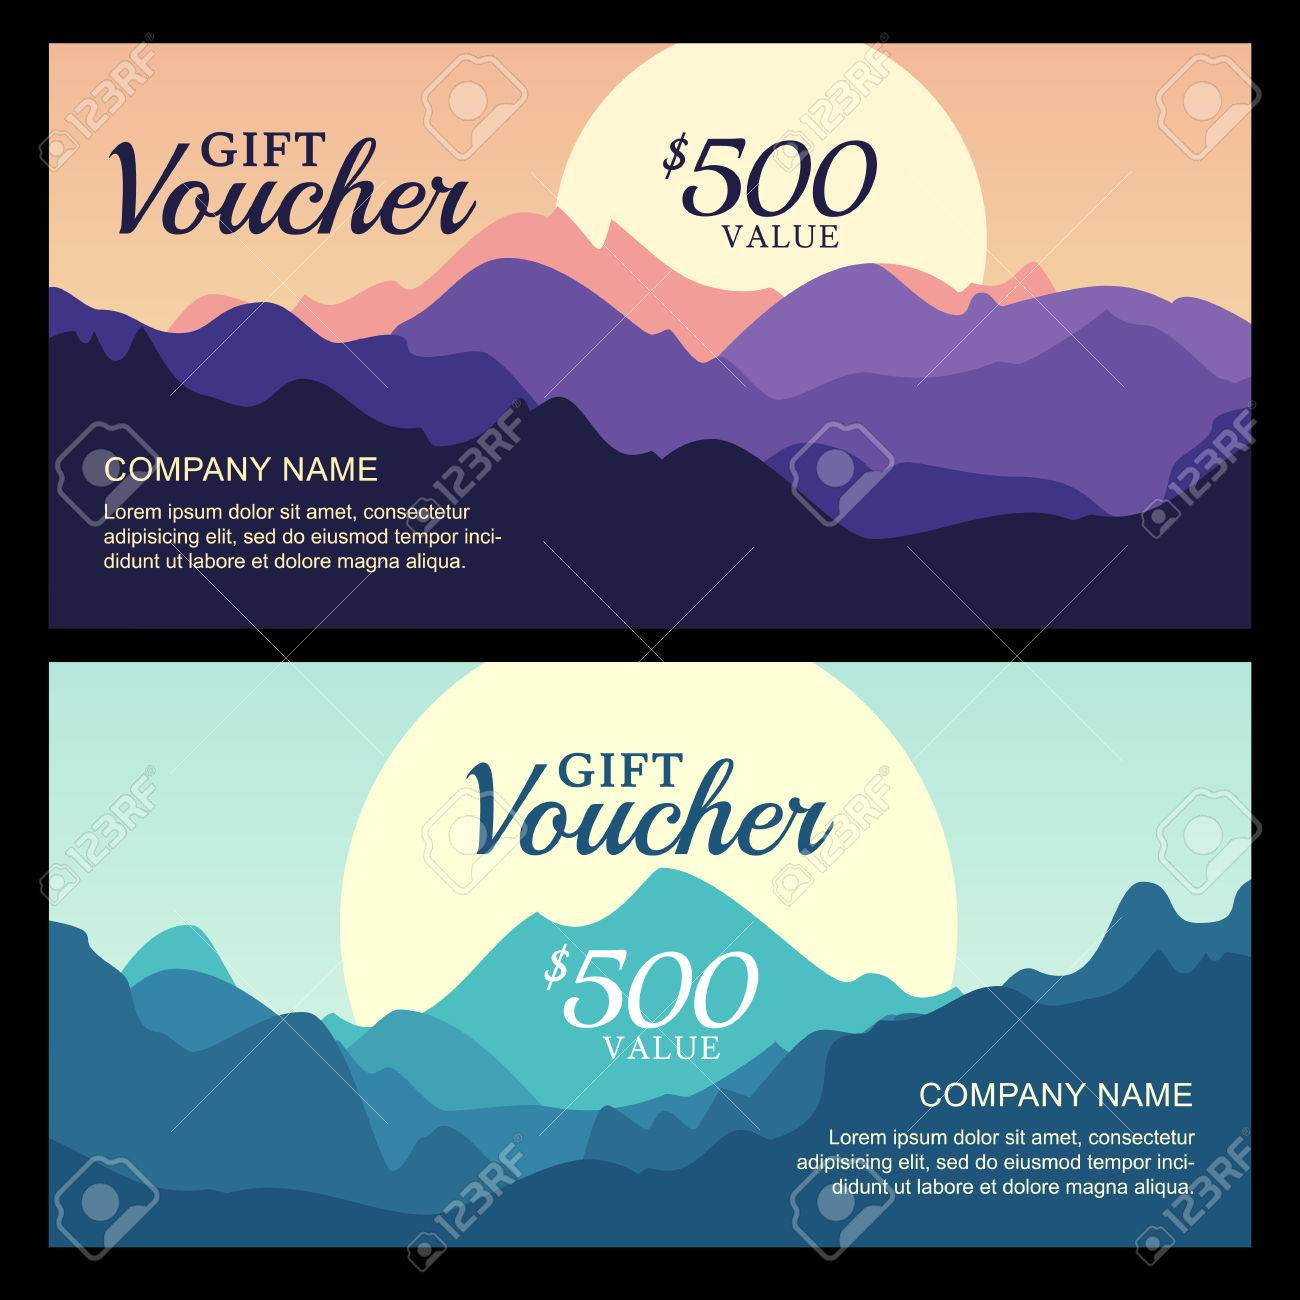 Vector gift voucher with mountain landscape view business card vector gift voucher with mountain landscape view business card template nature background abstract magicingreecefo Images